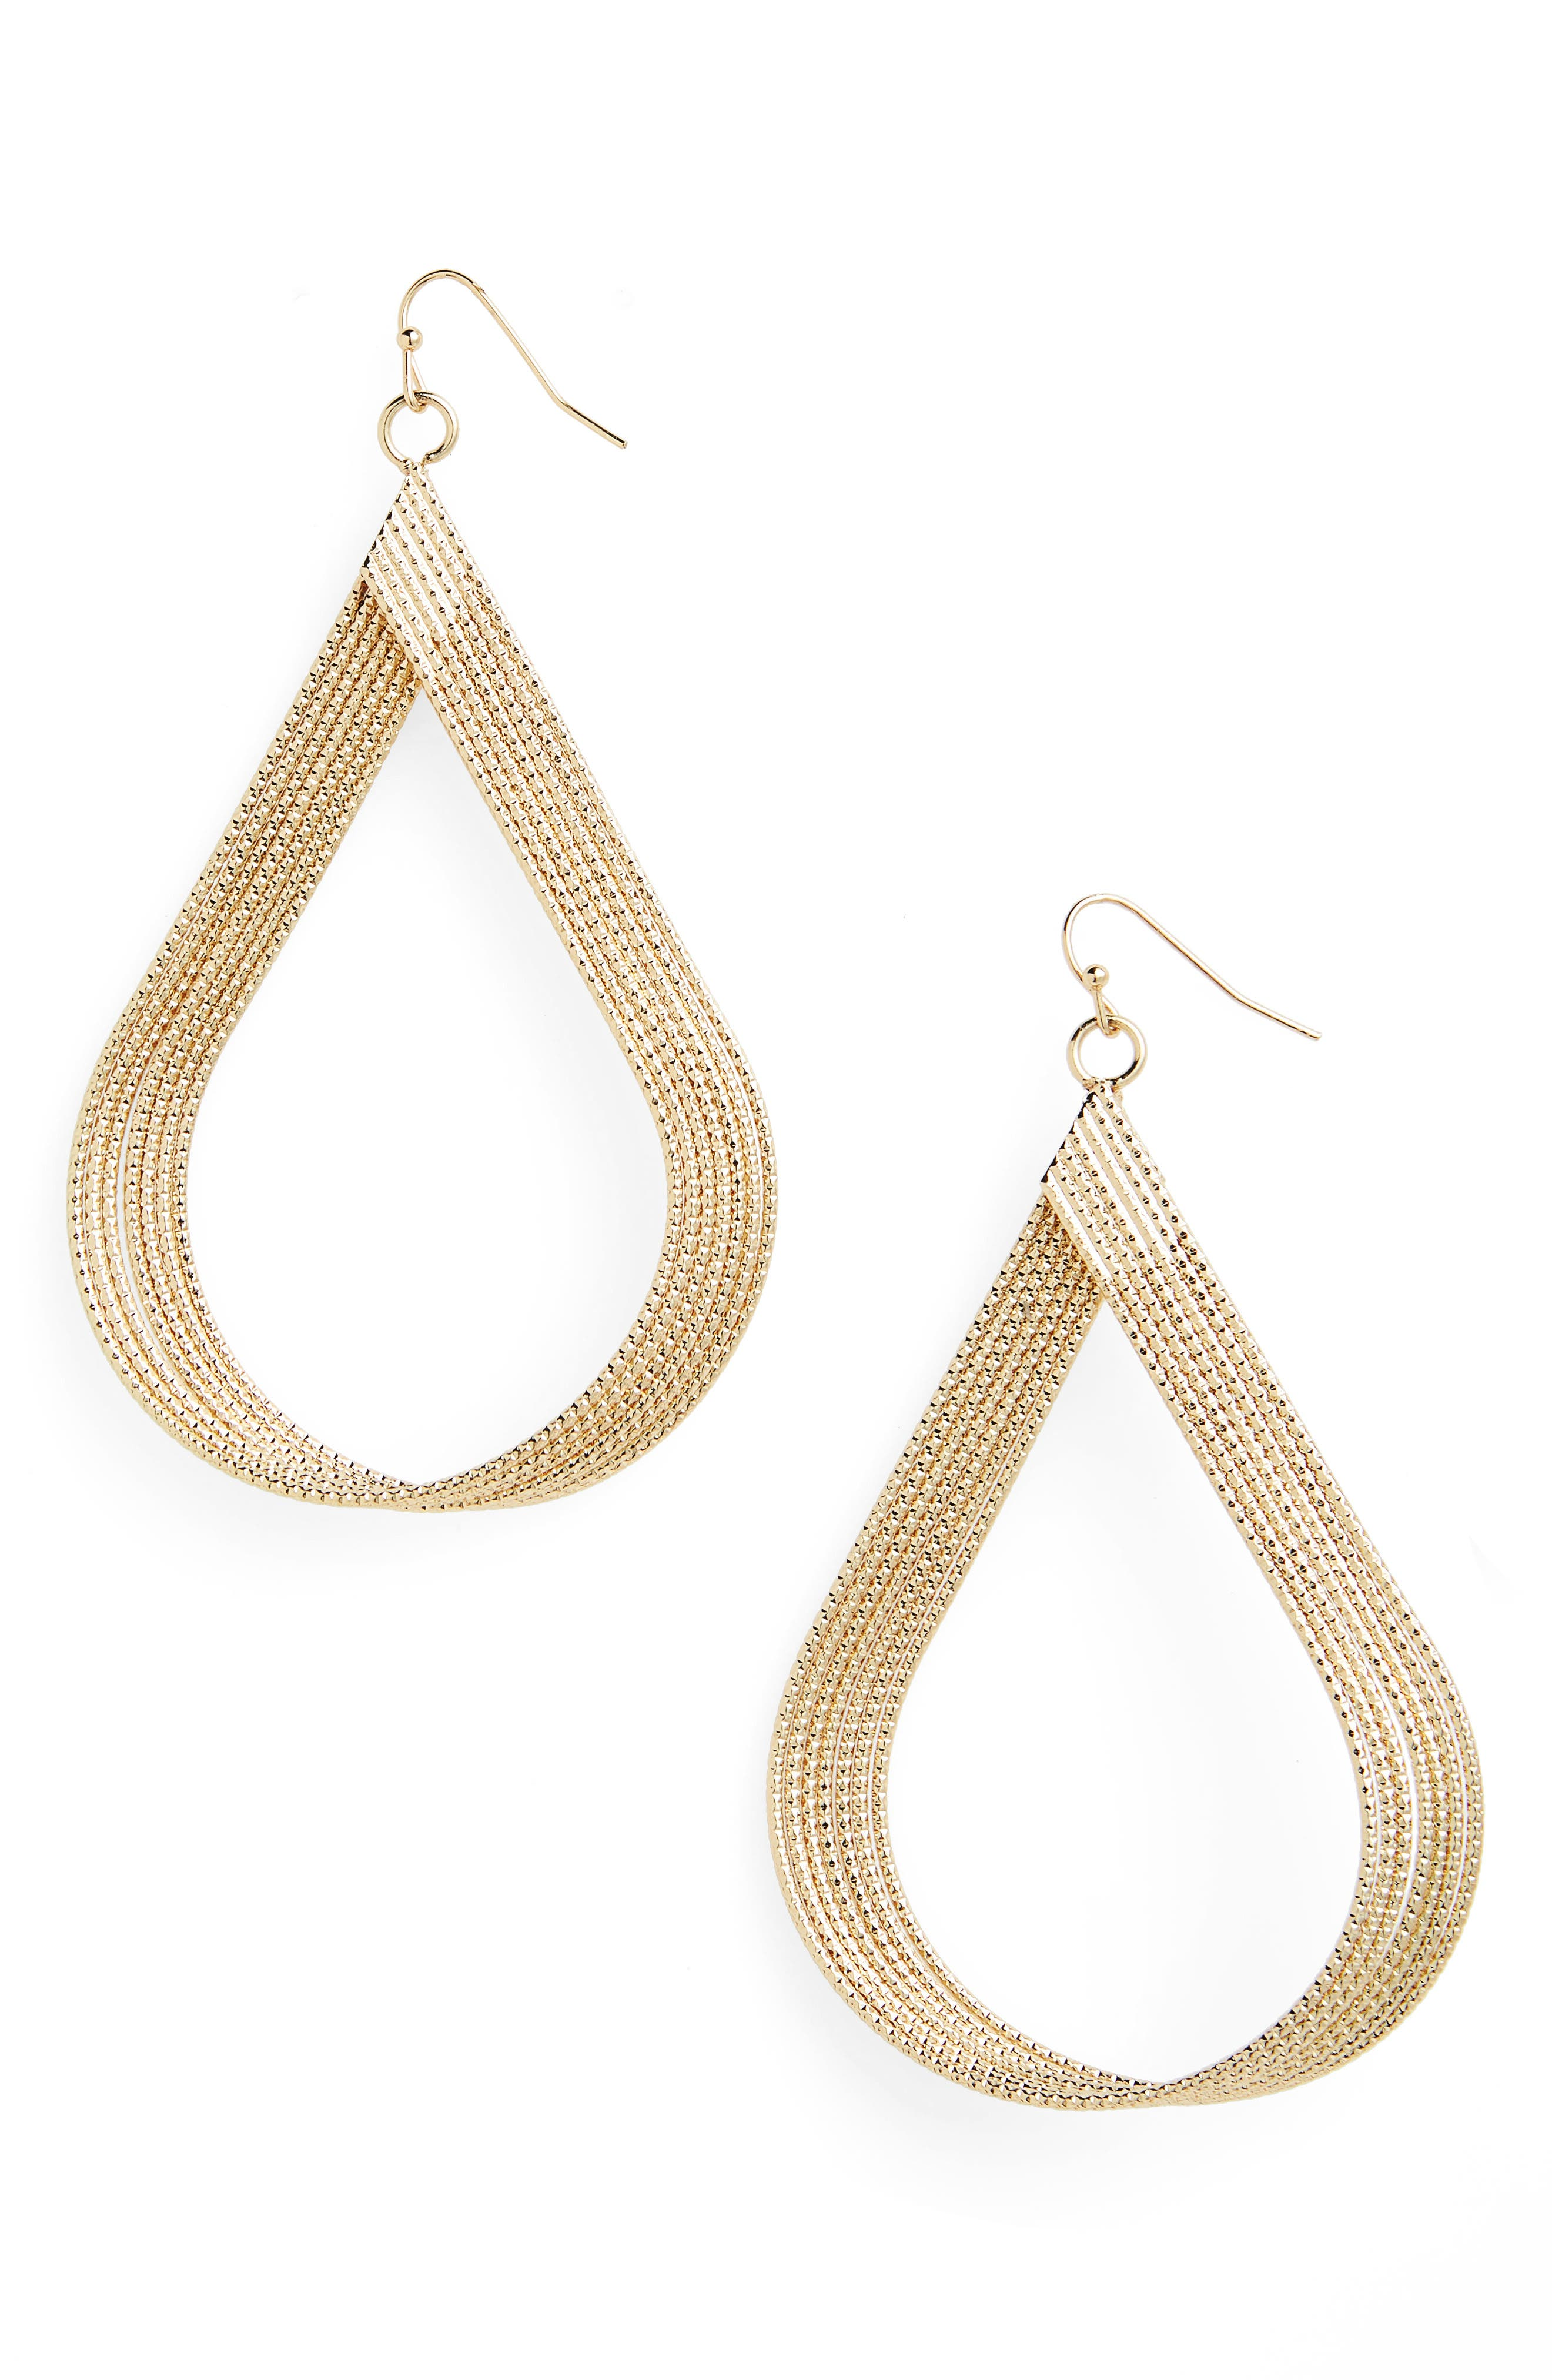 Large Textured Teardrop Earrings,                         Main,                         color, Gold